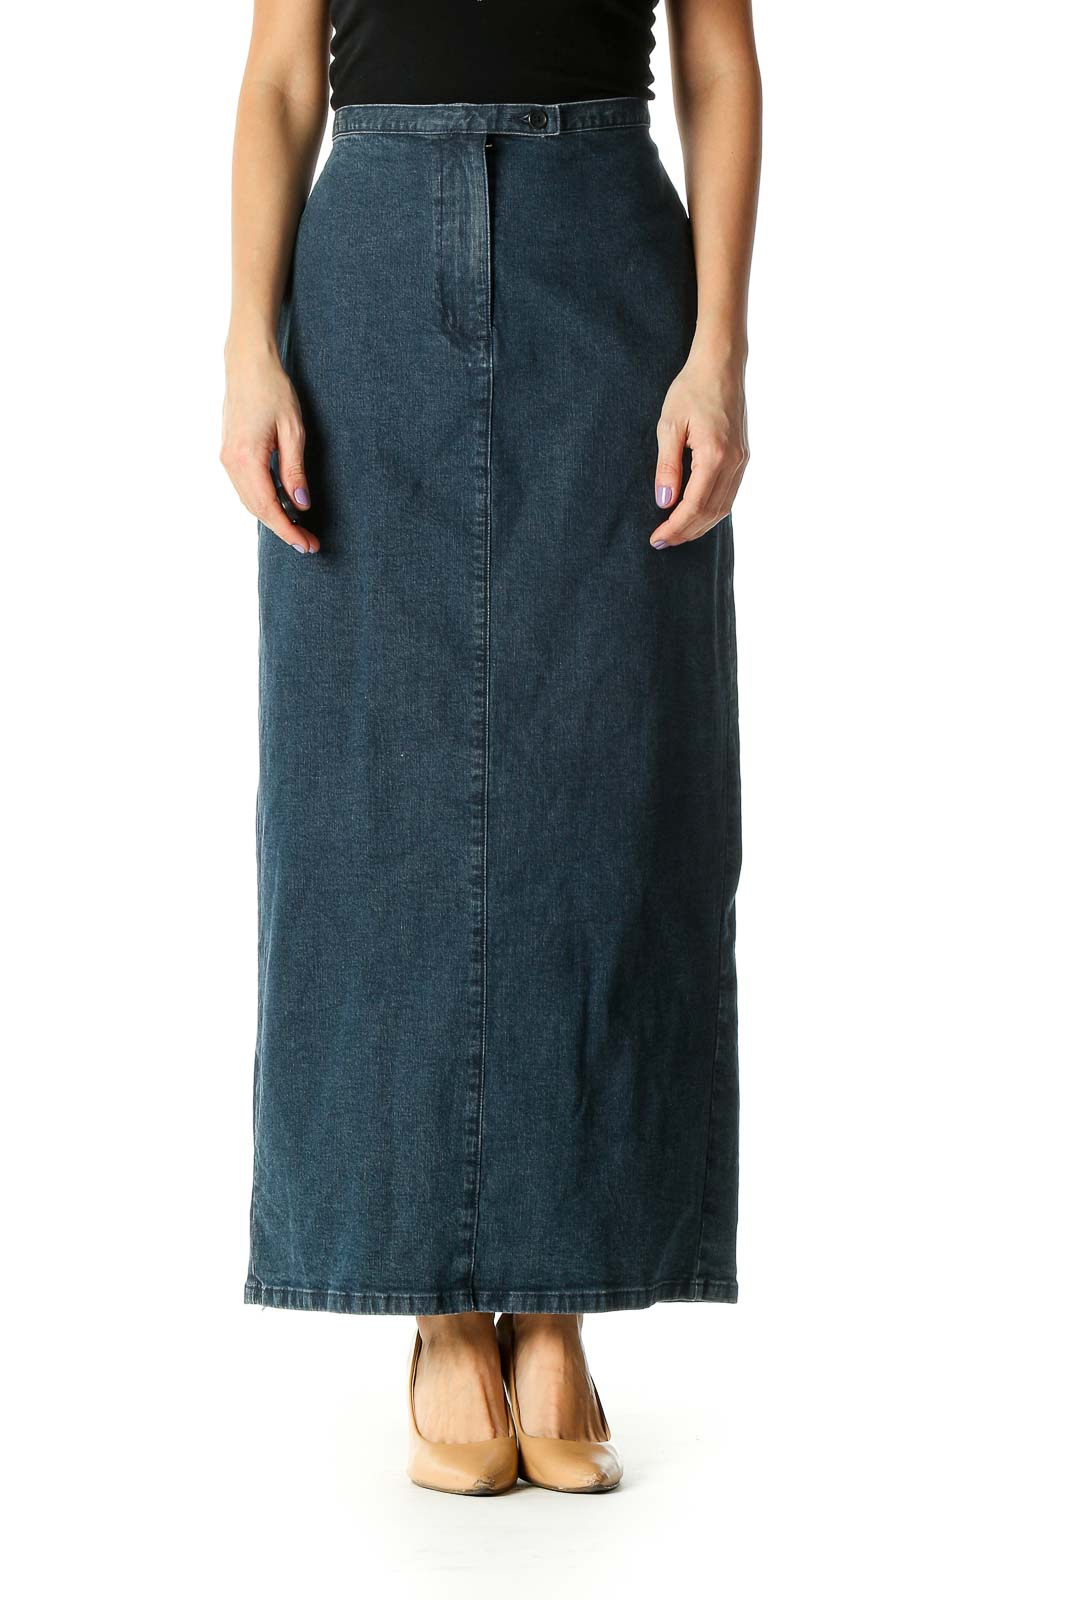 Blue Colorblock Casual Straight Skirt Front